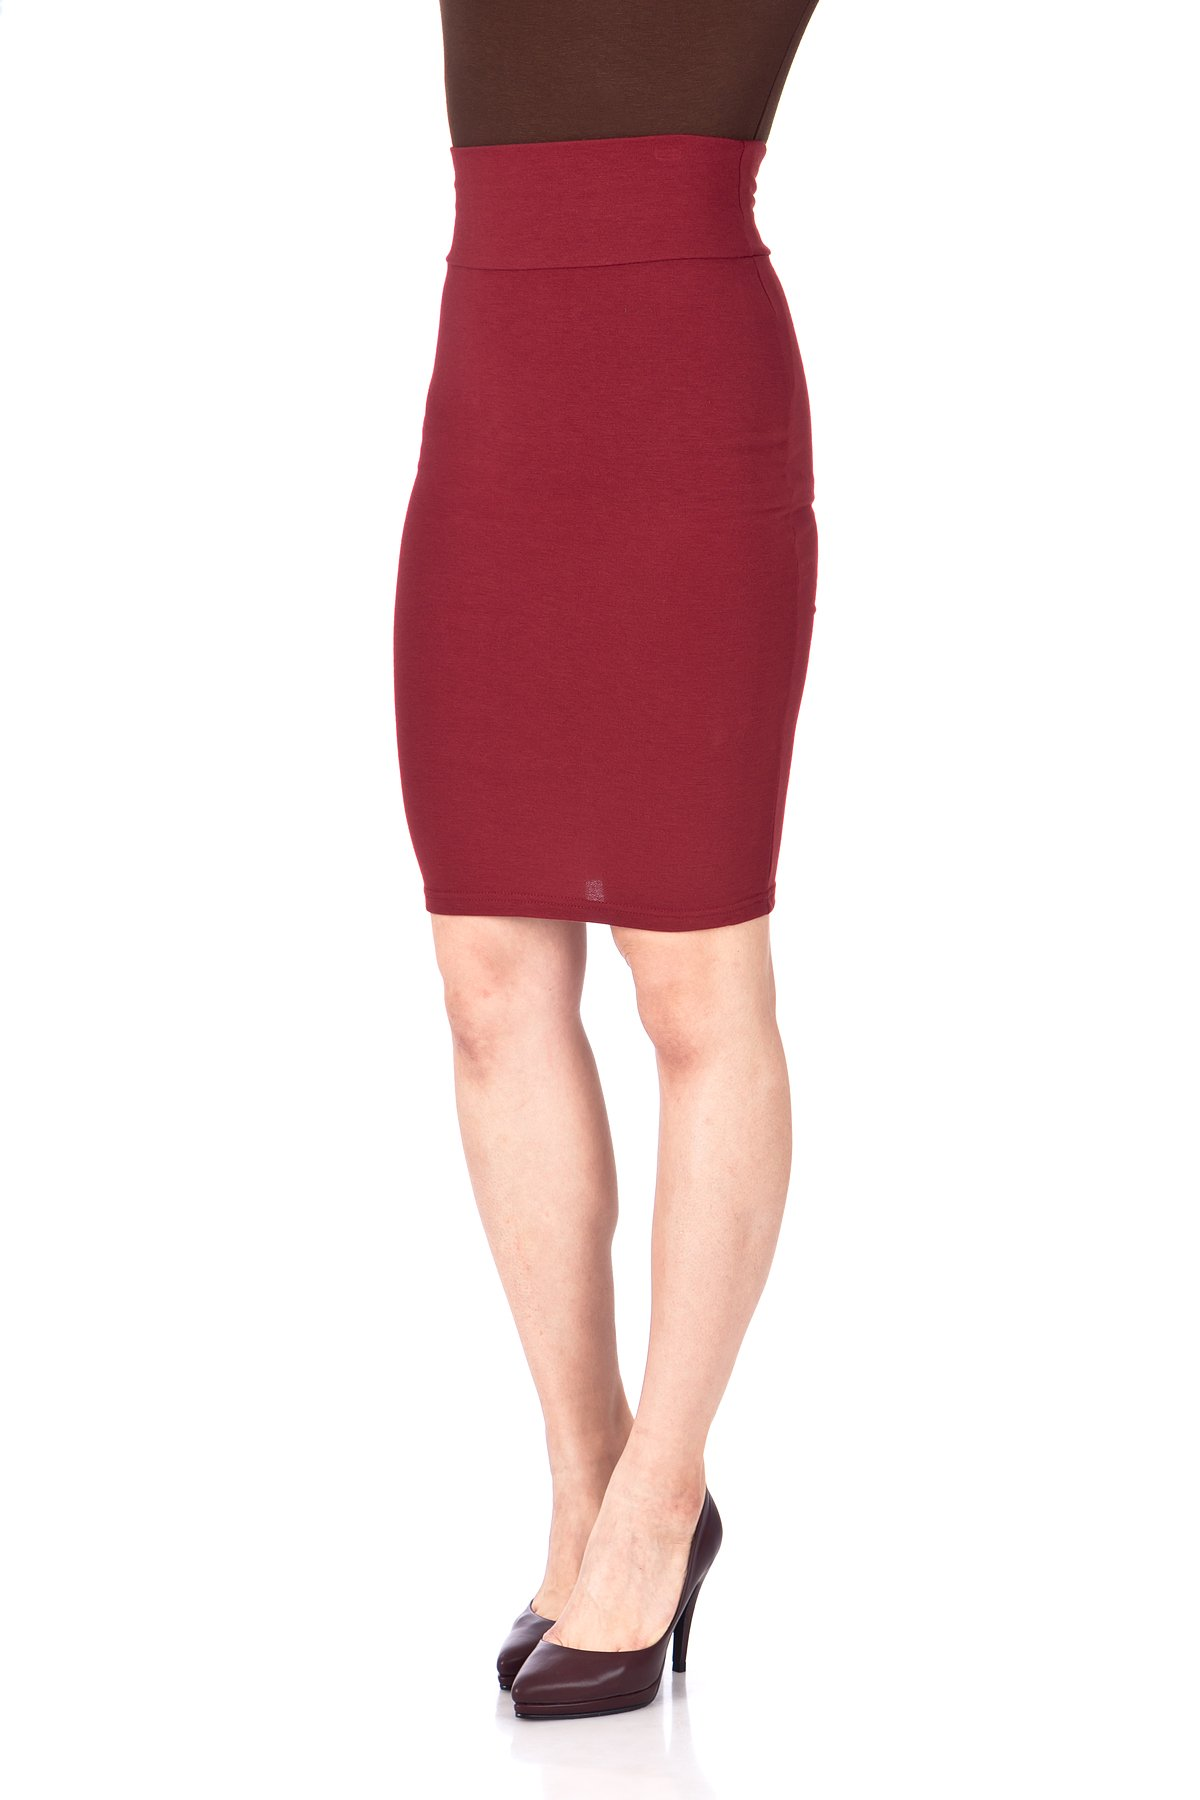 Every Occasion Stretch Pull on Wide High Waist Bodycon Pencil Knee Length Midi Skirt Burgundy 06